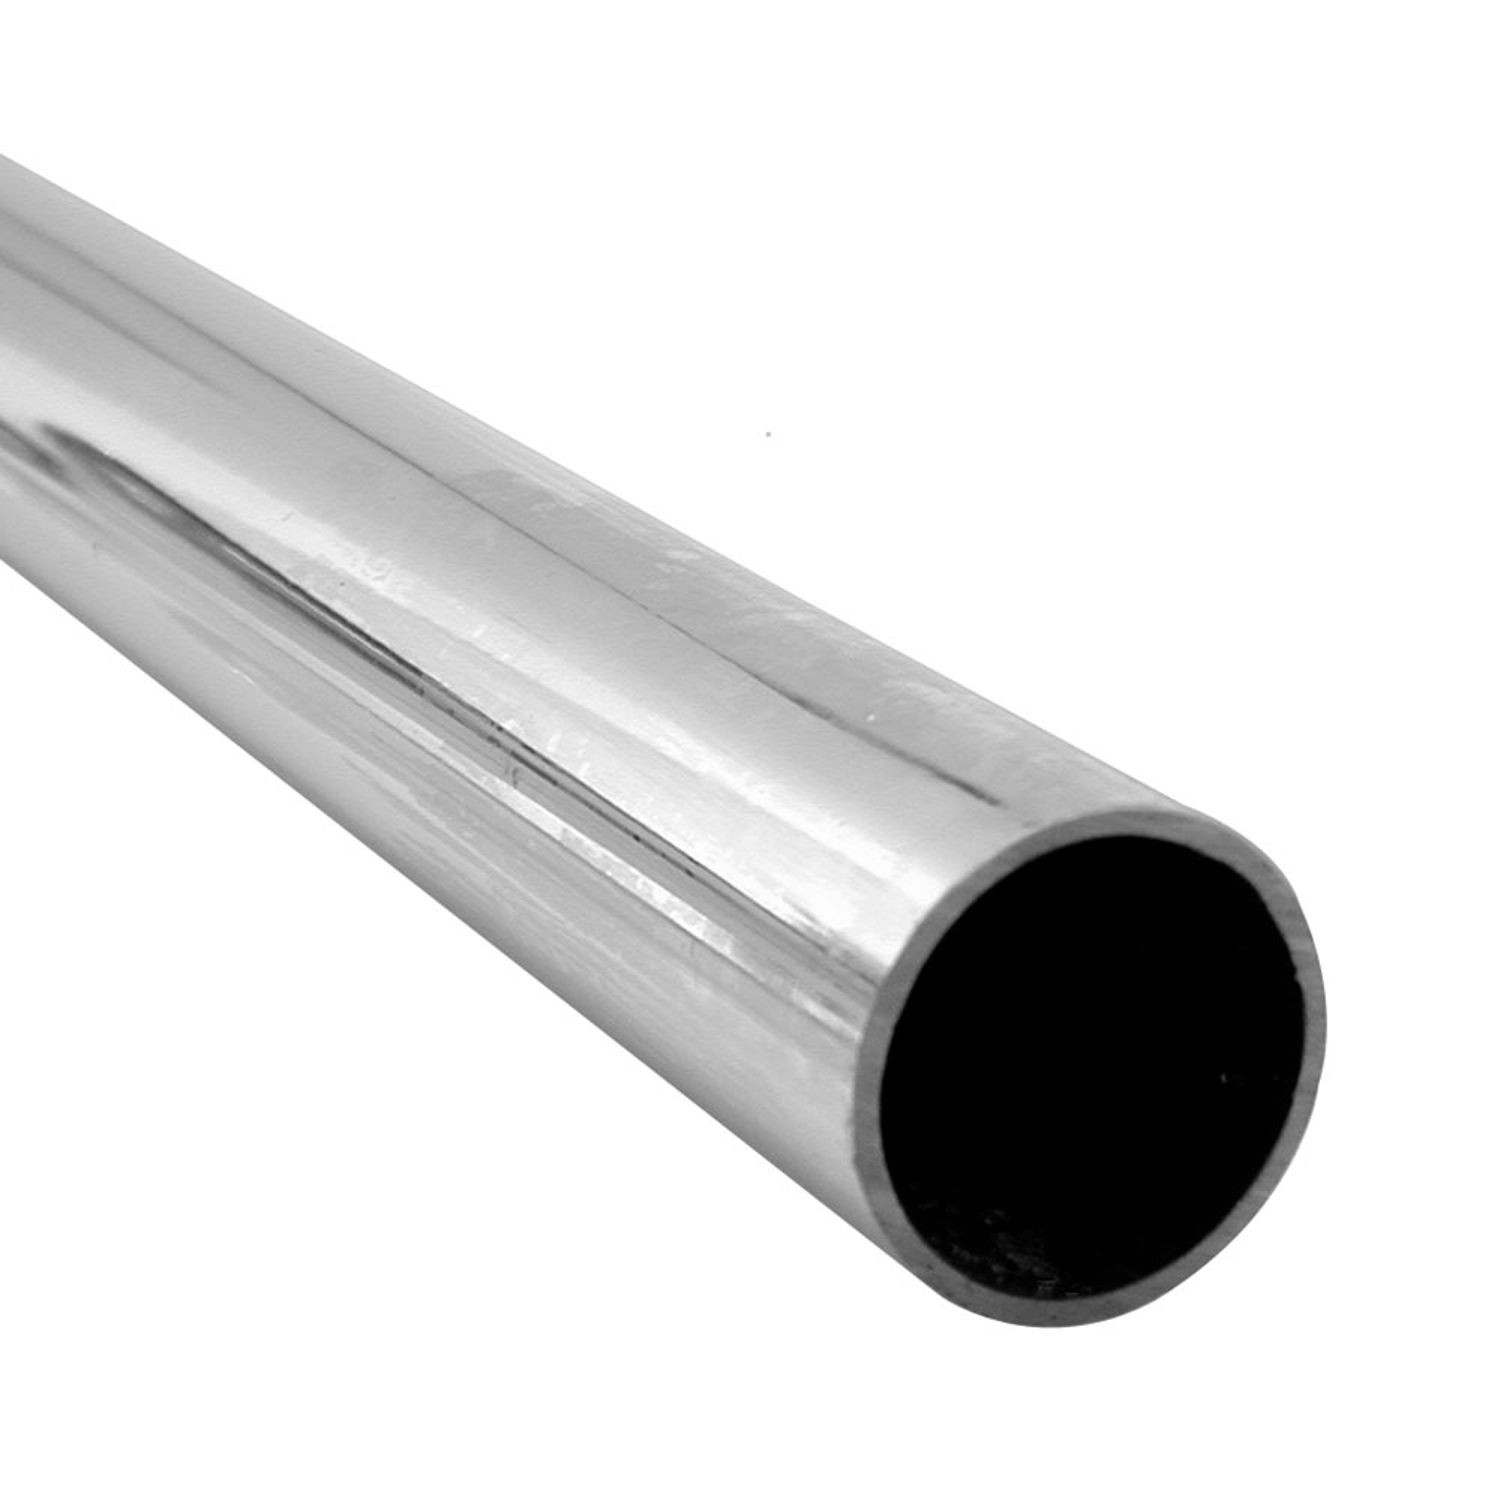 "1"" Outside Diameter x 48"" Length x 17 Gauge Chrome Plated Steel Tube"